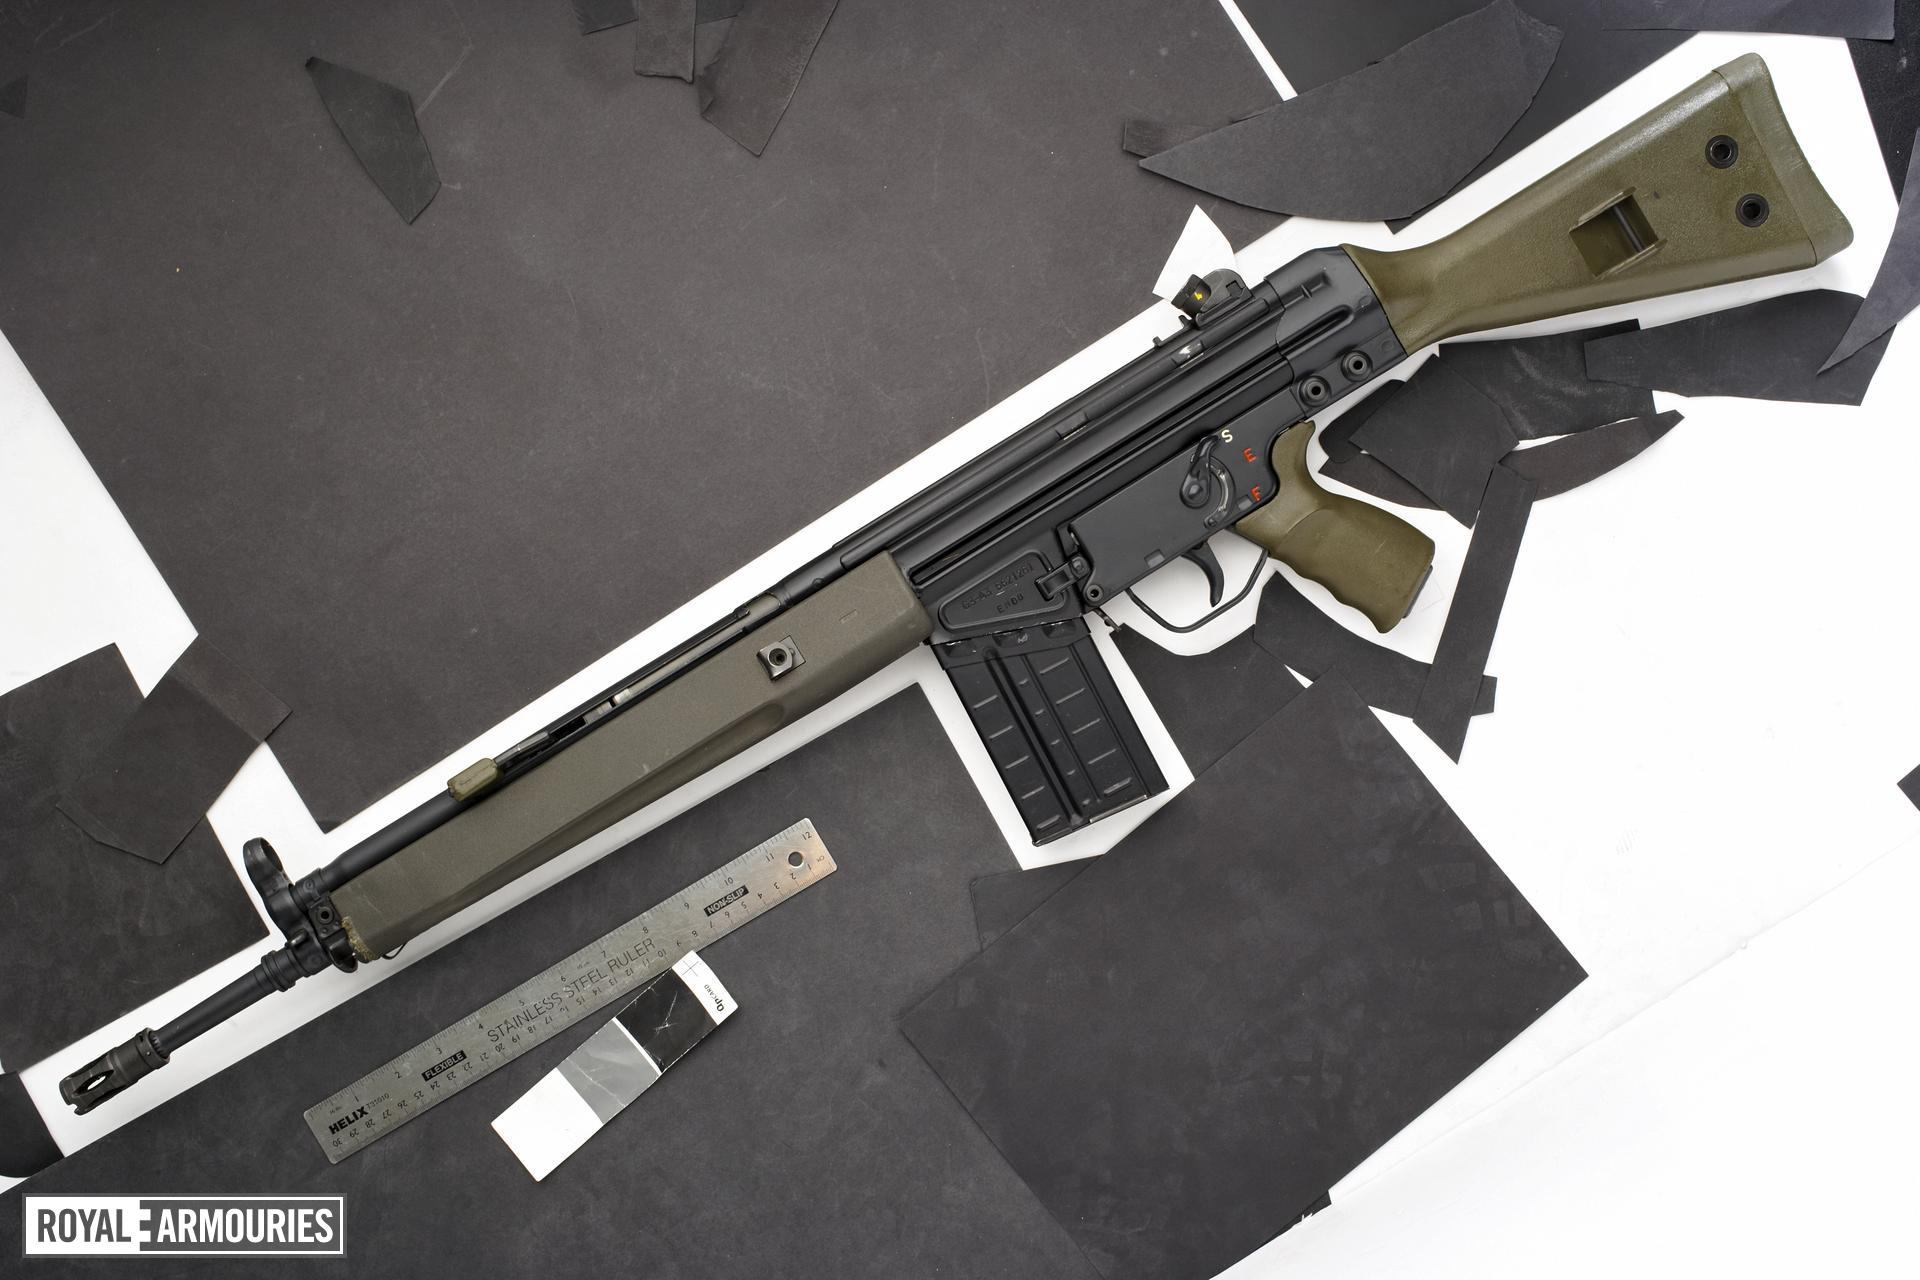 Centrefire automatic rifle - G3A3